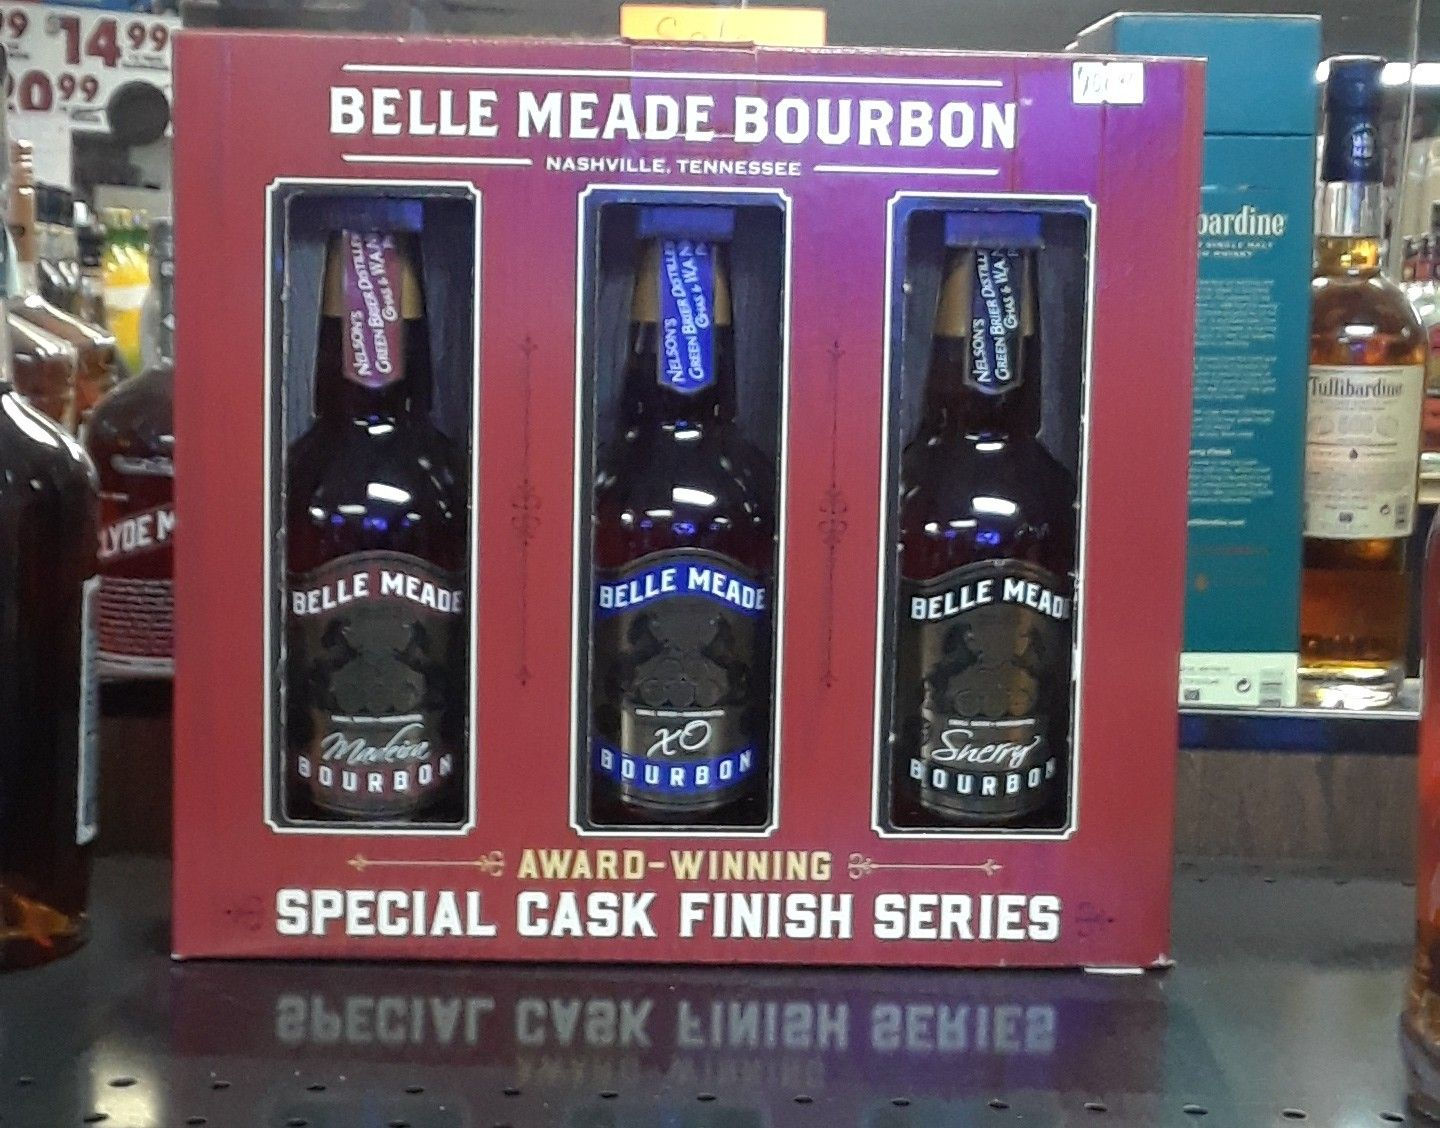 Belle Meade Ticket Price 110 00 For 3 Fifths First Burboun Made In Tennessee Collectors Edition Price Slashed Down To 55 00 For Set At Telanas This Week On Meade